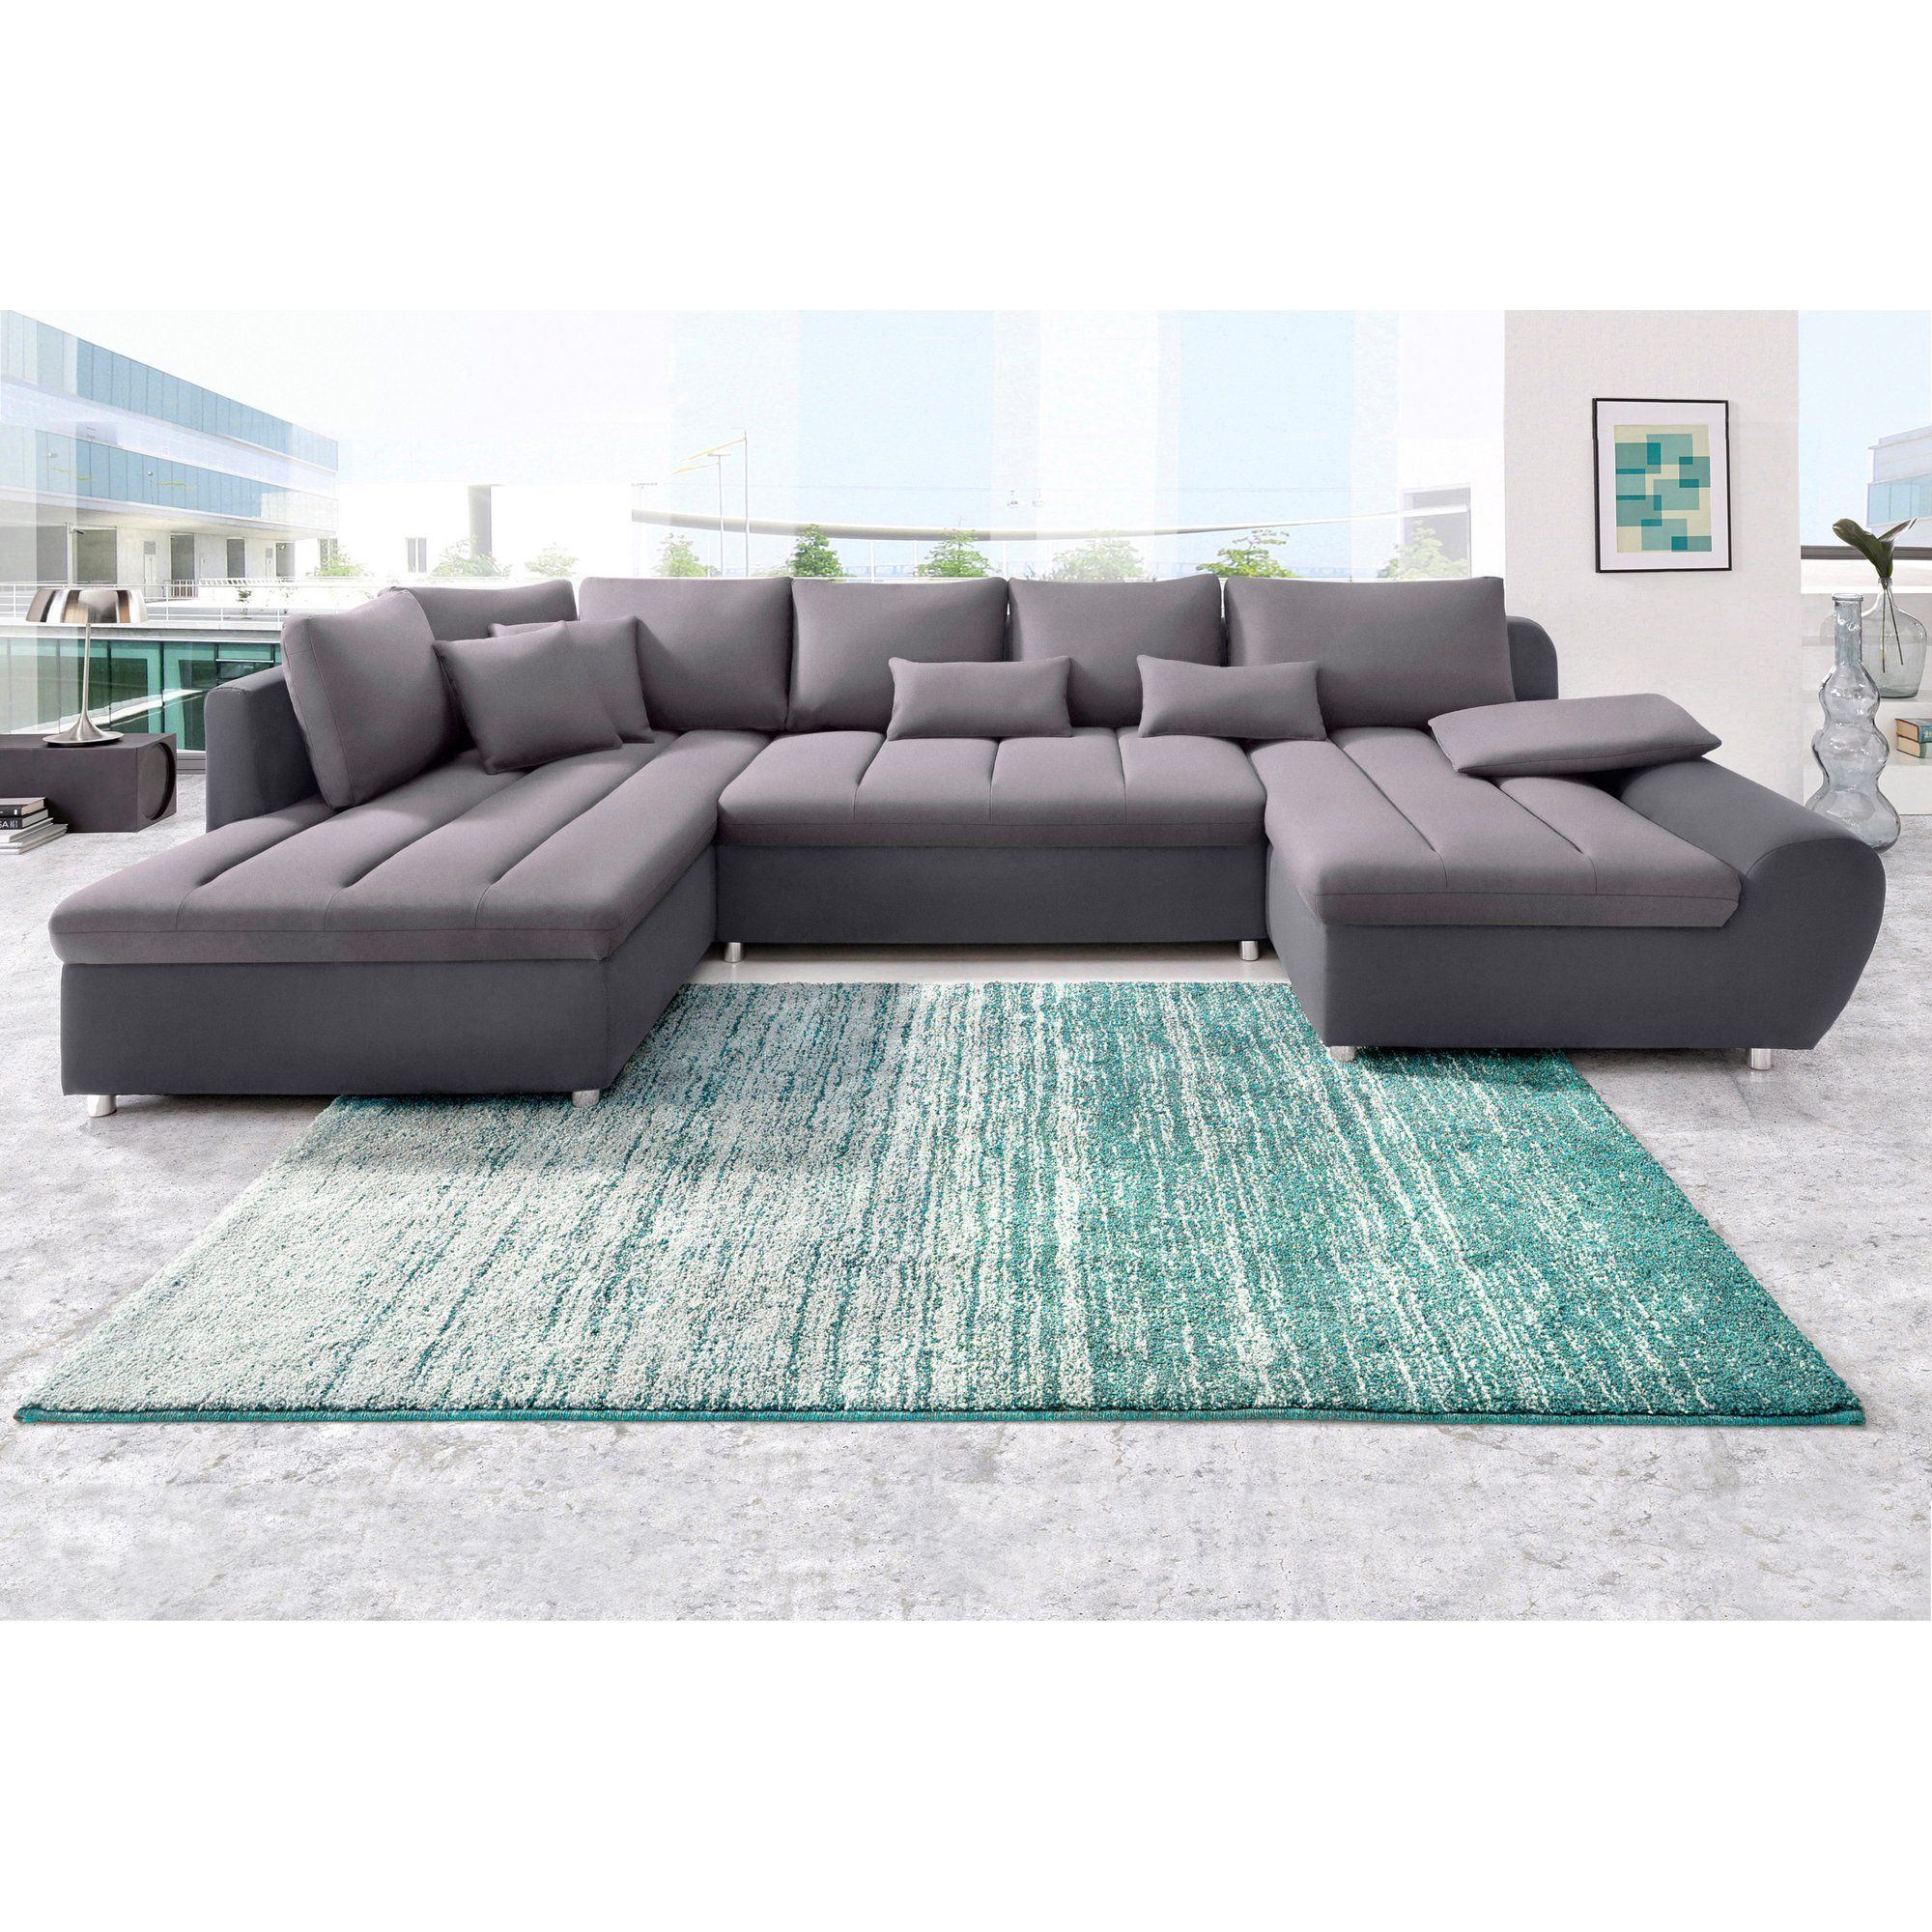 SIT amp MORE Wohnlandschaft ECO Bio, FSC XL Recamiere rechts ohne  Bettfunktion Cinema Room, 94508dbab3e8